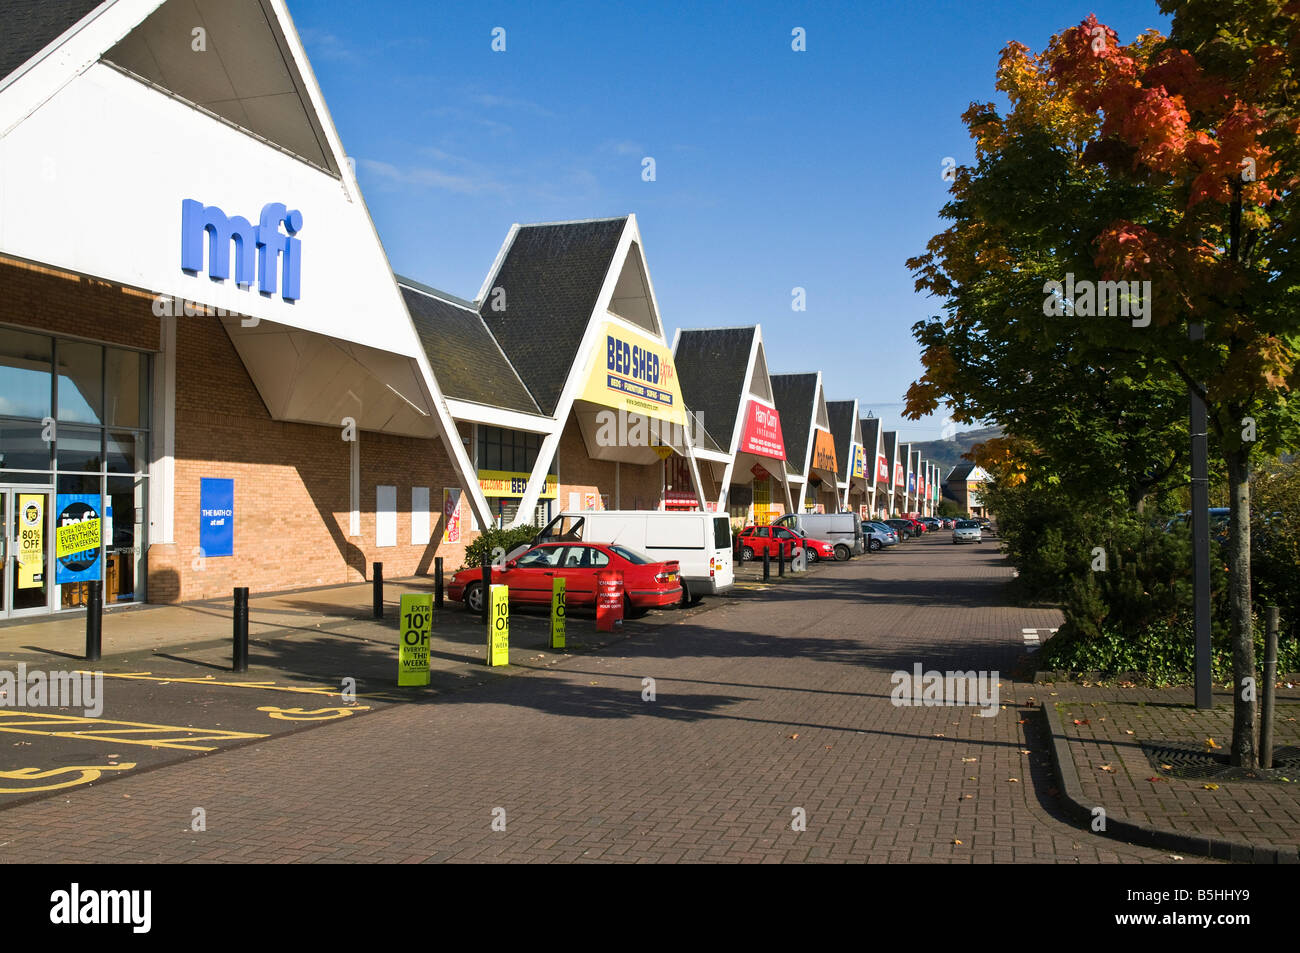 dh Springkerse Retail Park STIRLING STIRLINGSHIRE Shopping mall shops and parked cars outlets - Stock Image